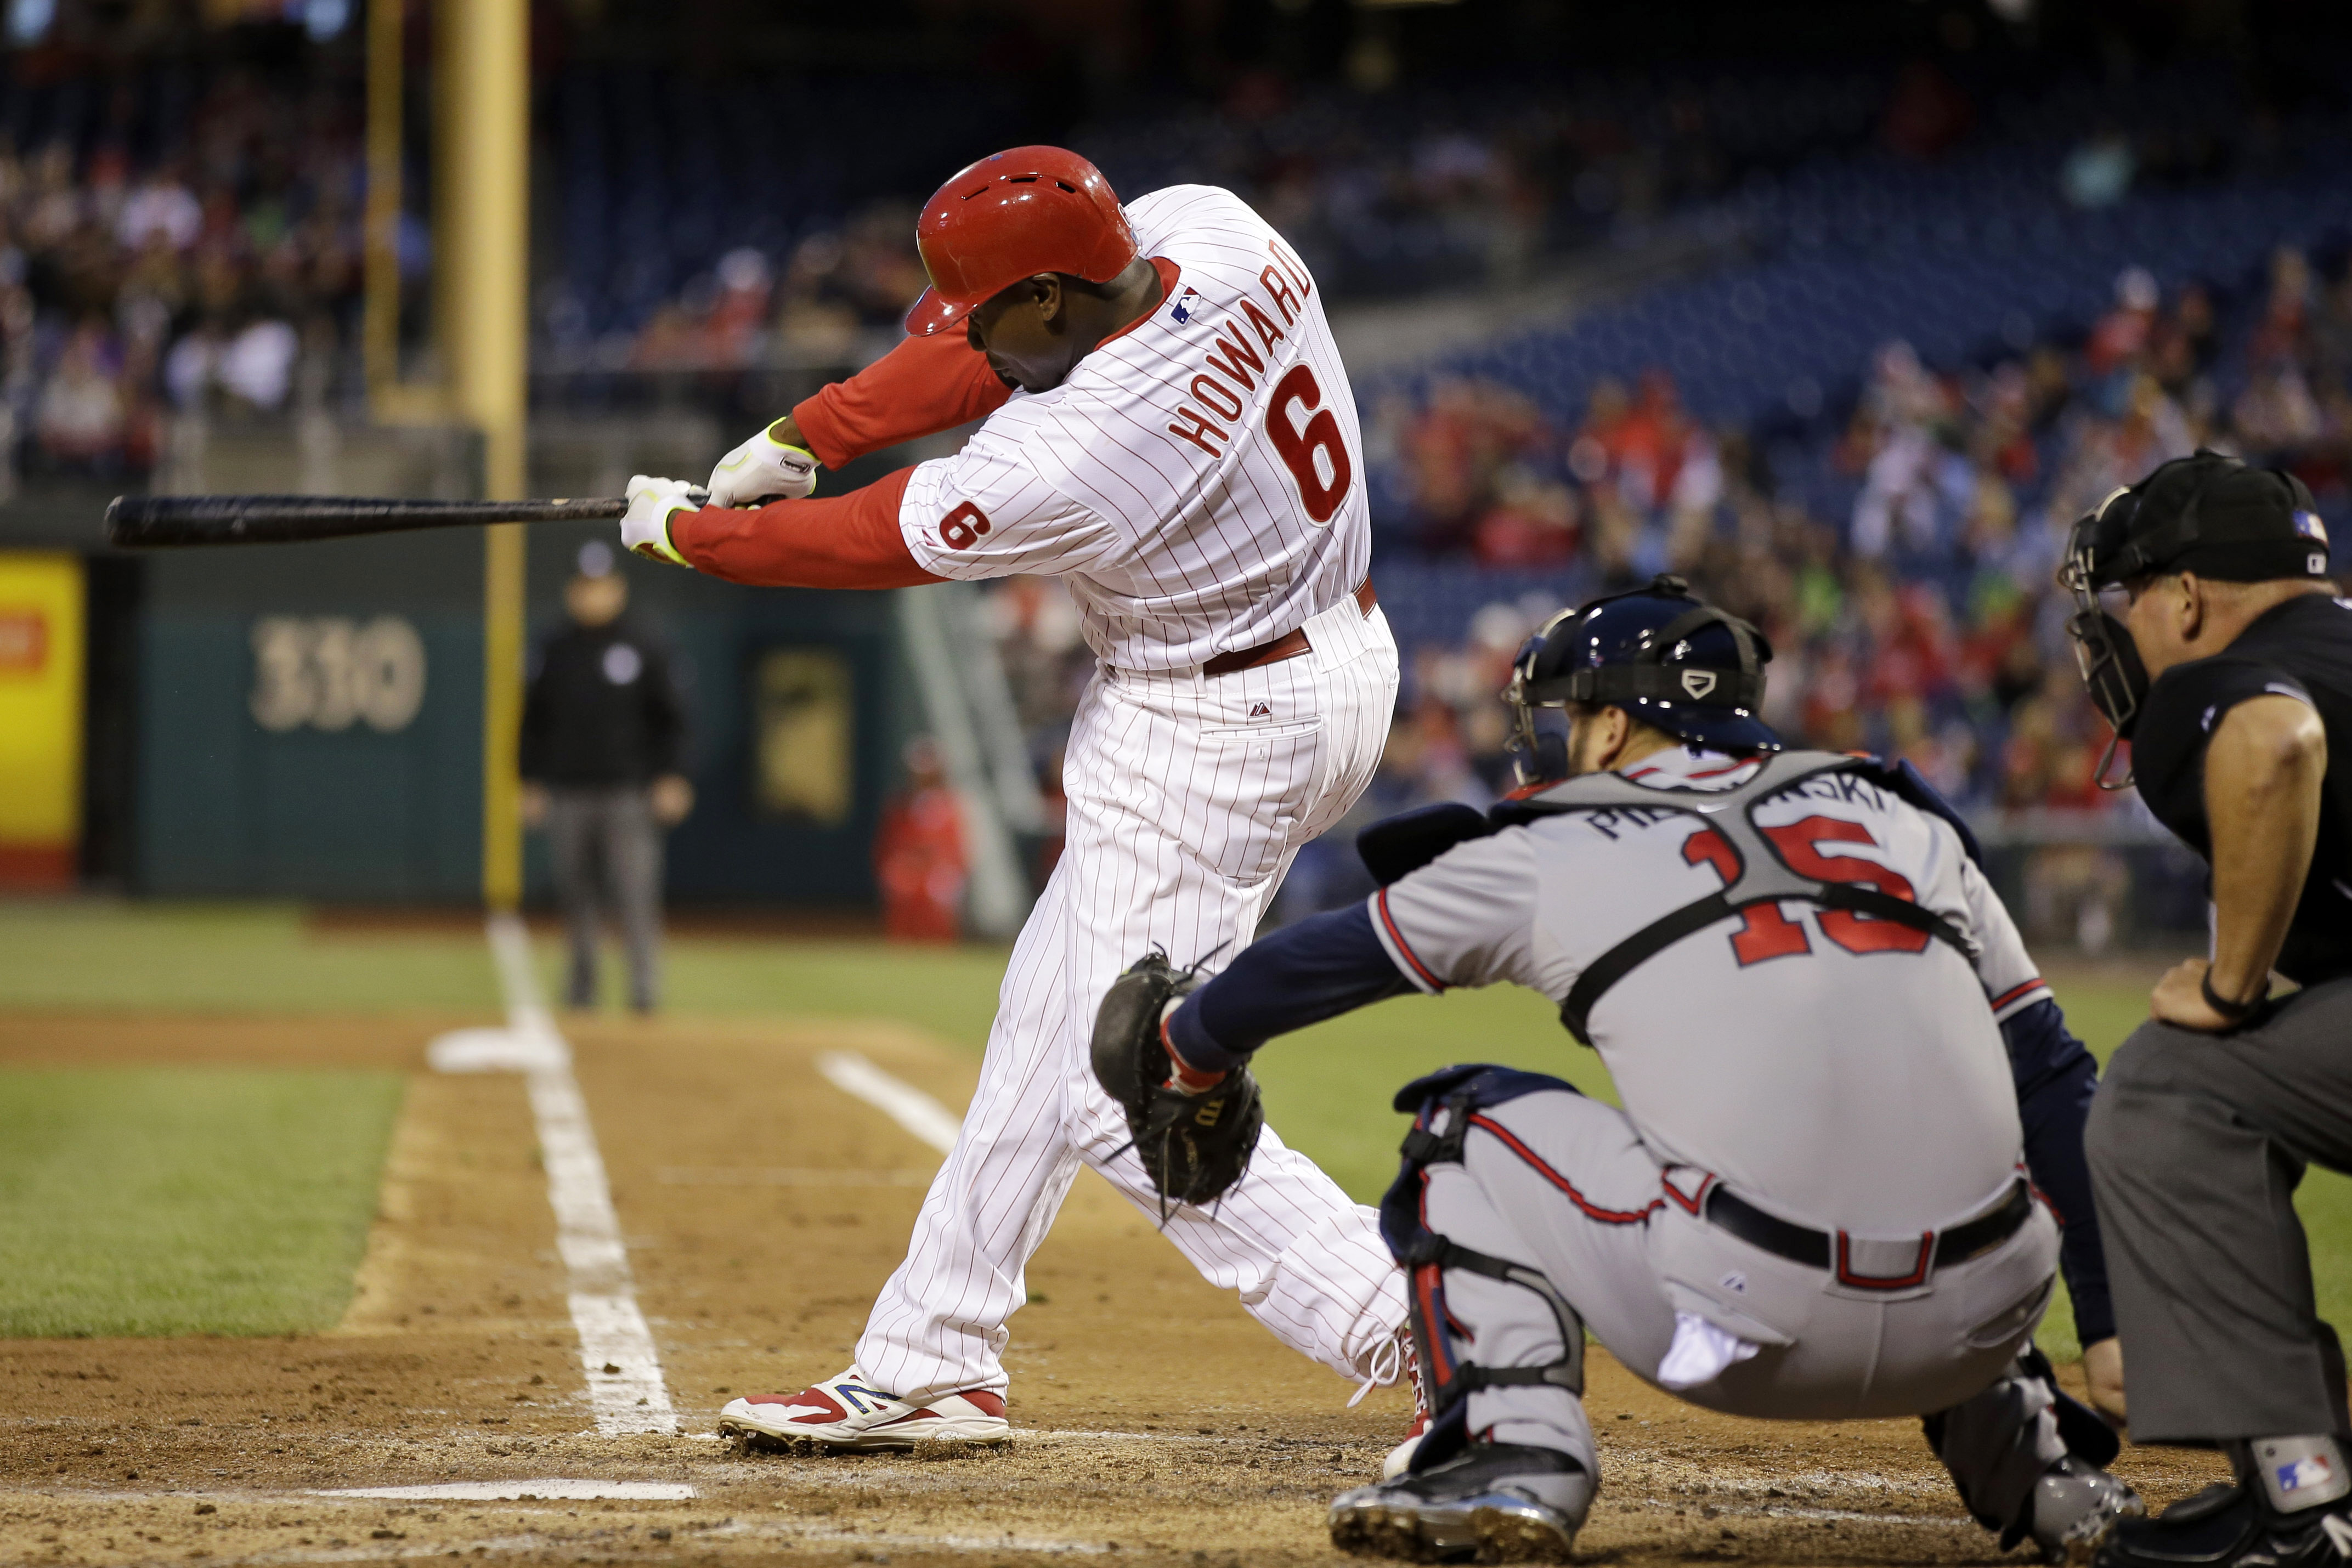 Philadelphia Phillies' Ryan Howard follows through on a two-run home run off Atlanta Braves starting pitcher Shelby Miller as catcher A.J. Pierzynski, center, and umpire Mark Carlson watch during the fourth inning of a baseball game, Saturday, April 25, 2